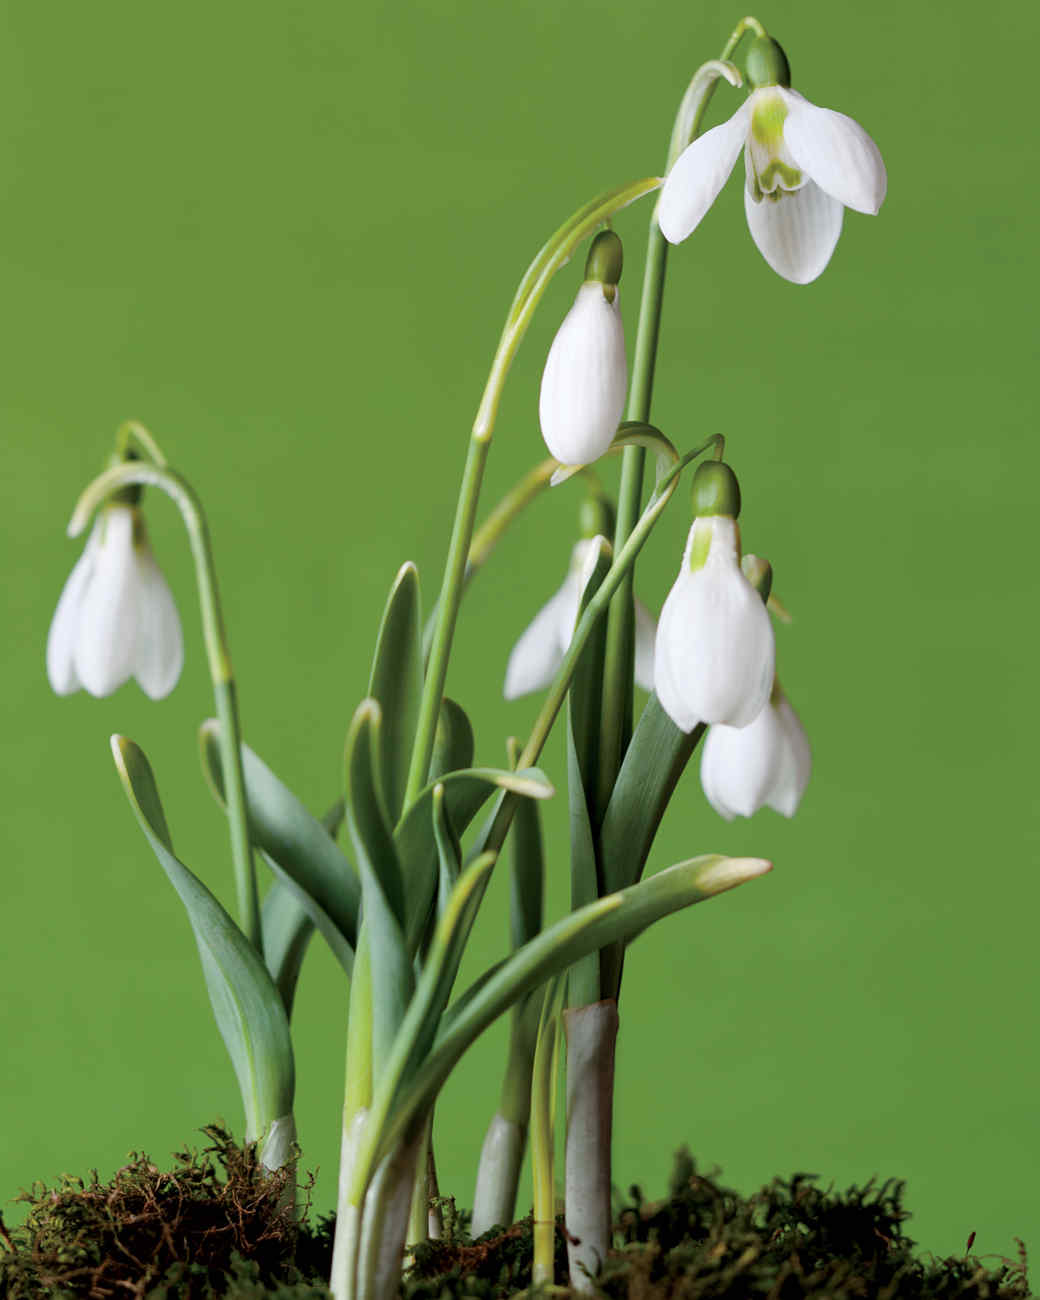 snowdrops-large-flowered-mld107313.jpg